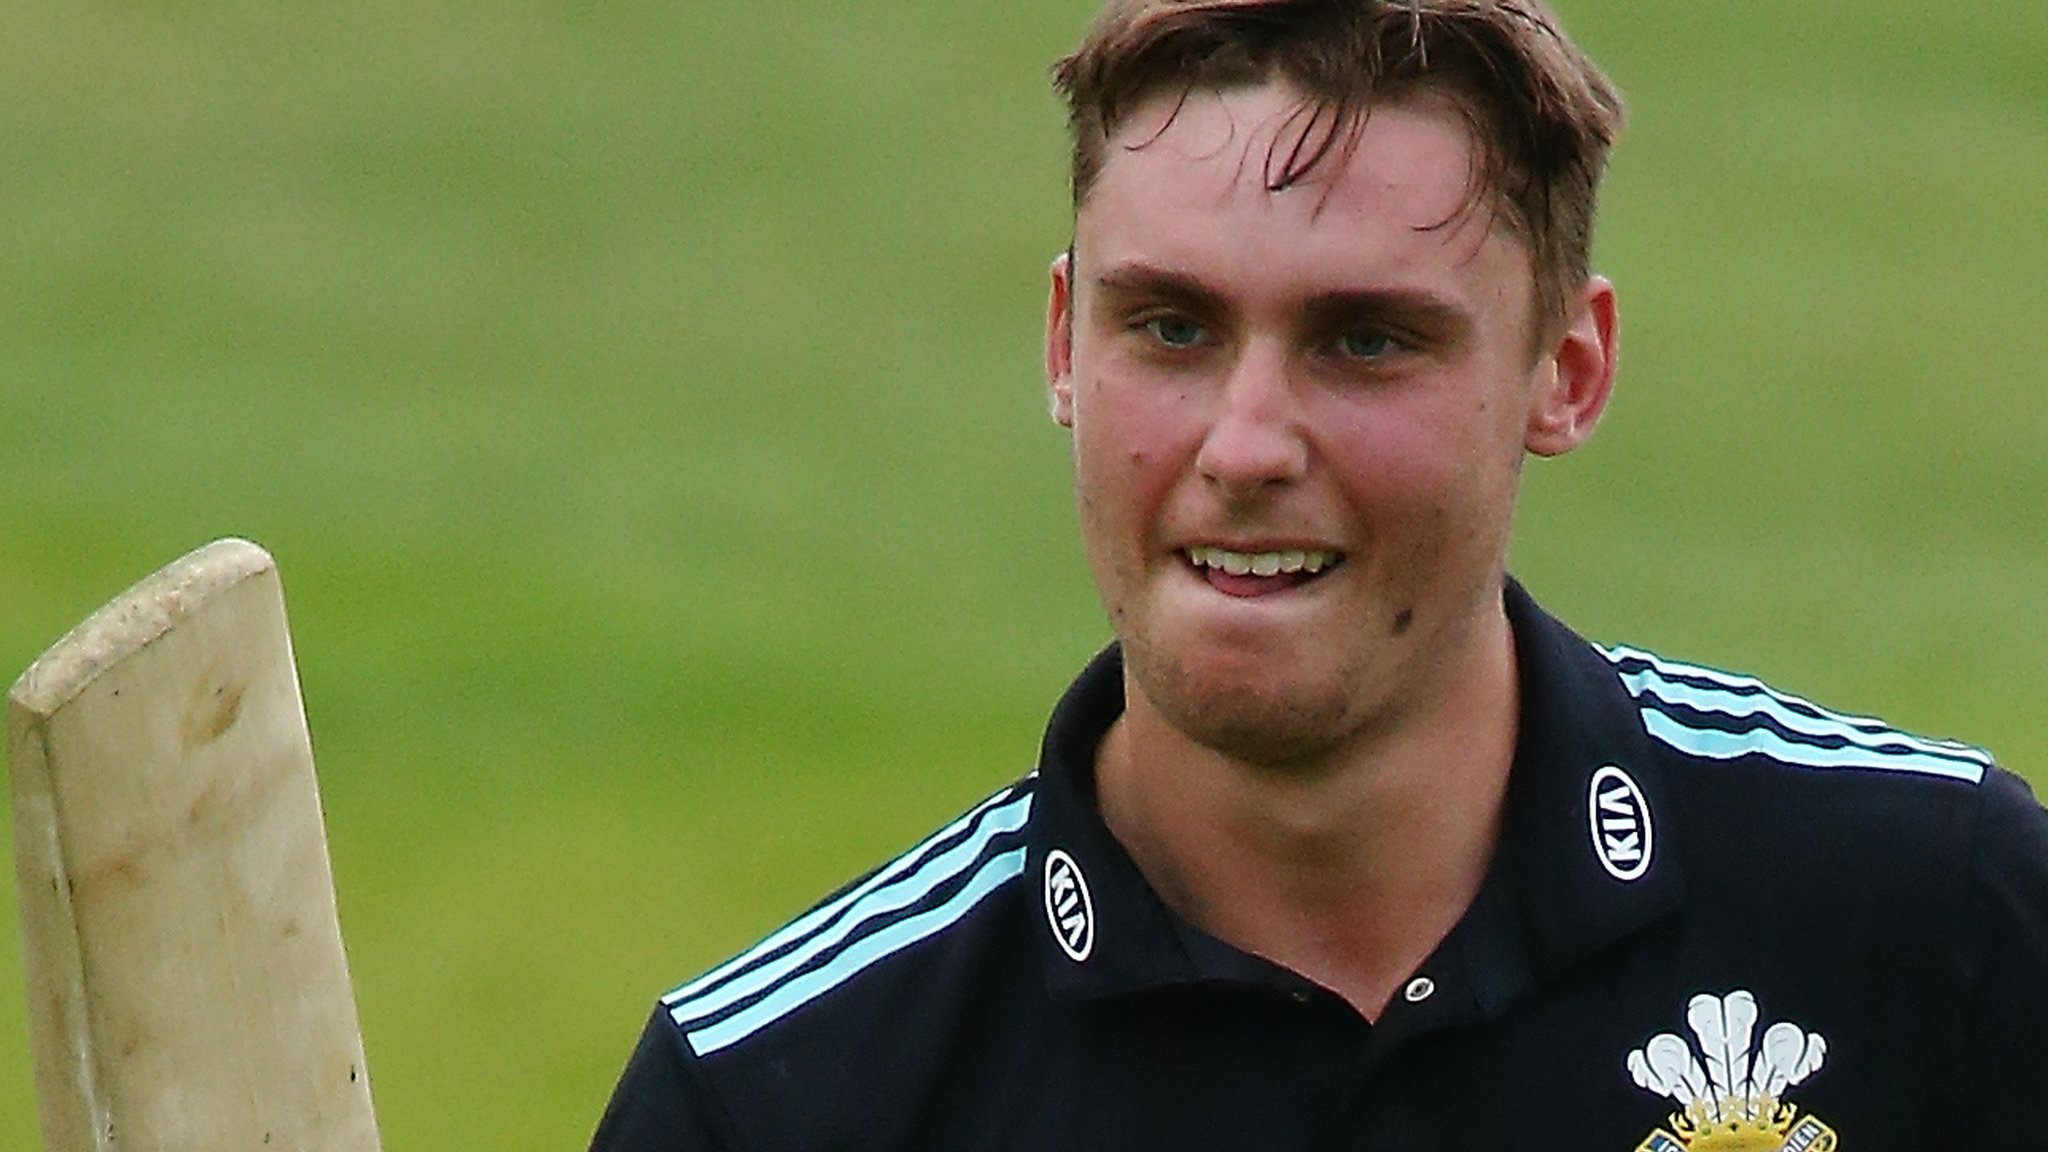 The fastest-ever hundred? Surrey's Jacks smashes ton off 25 balls